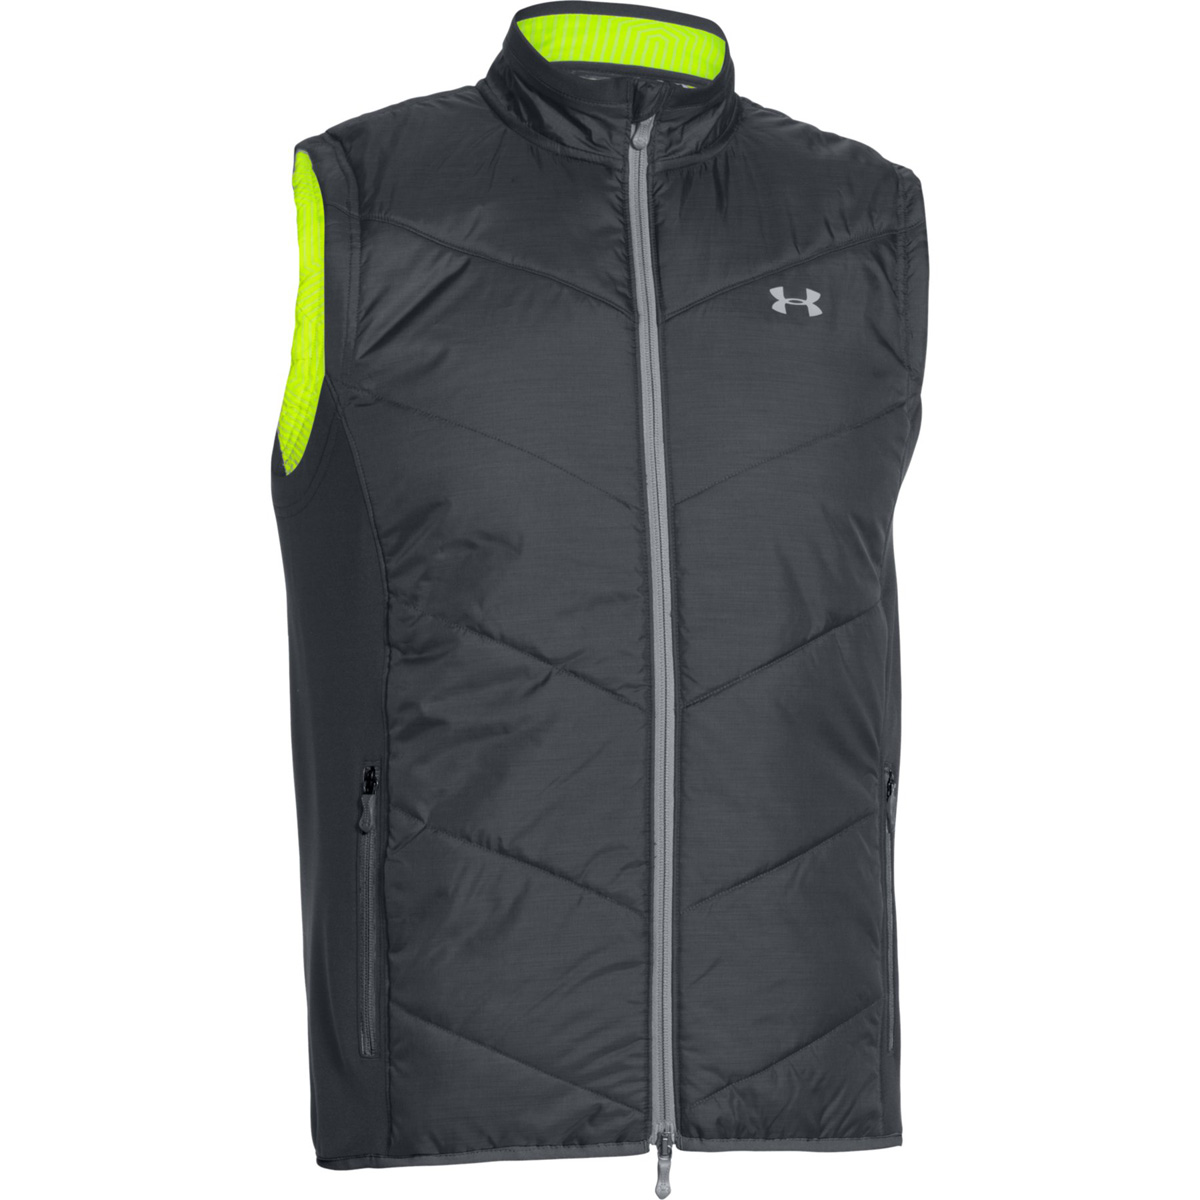 38% OFF RRP Under Armour Mens CGI UA Knock Down Vest Full